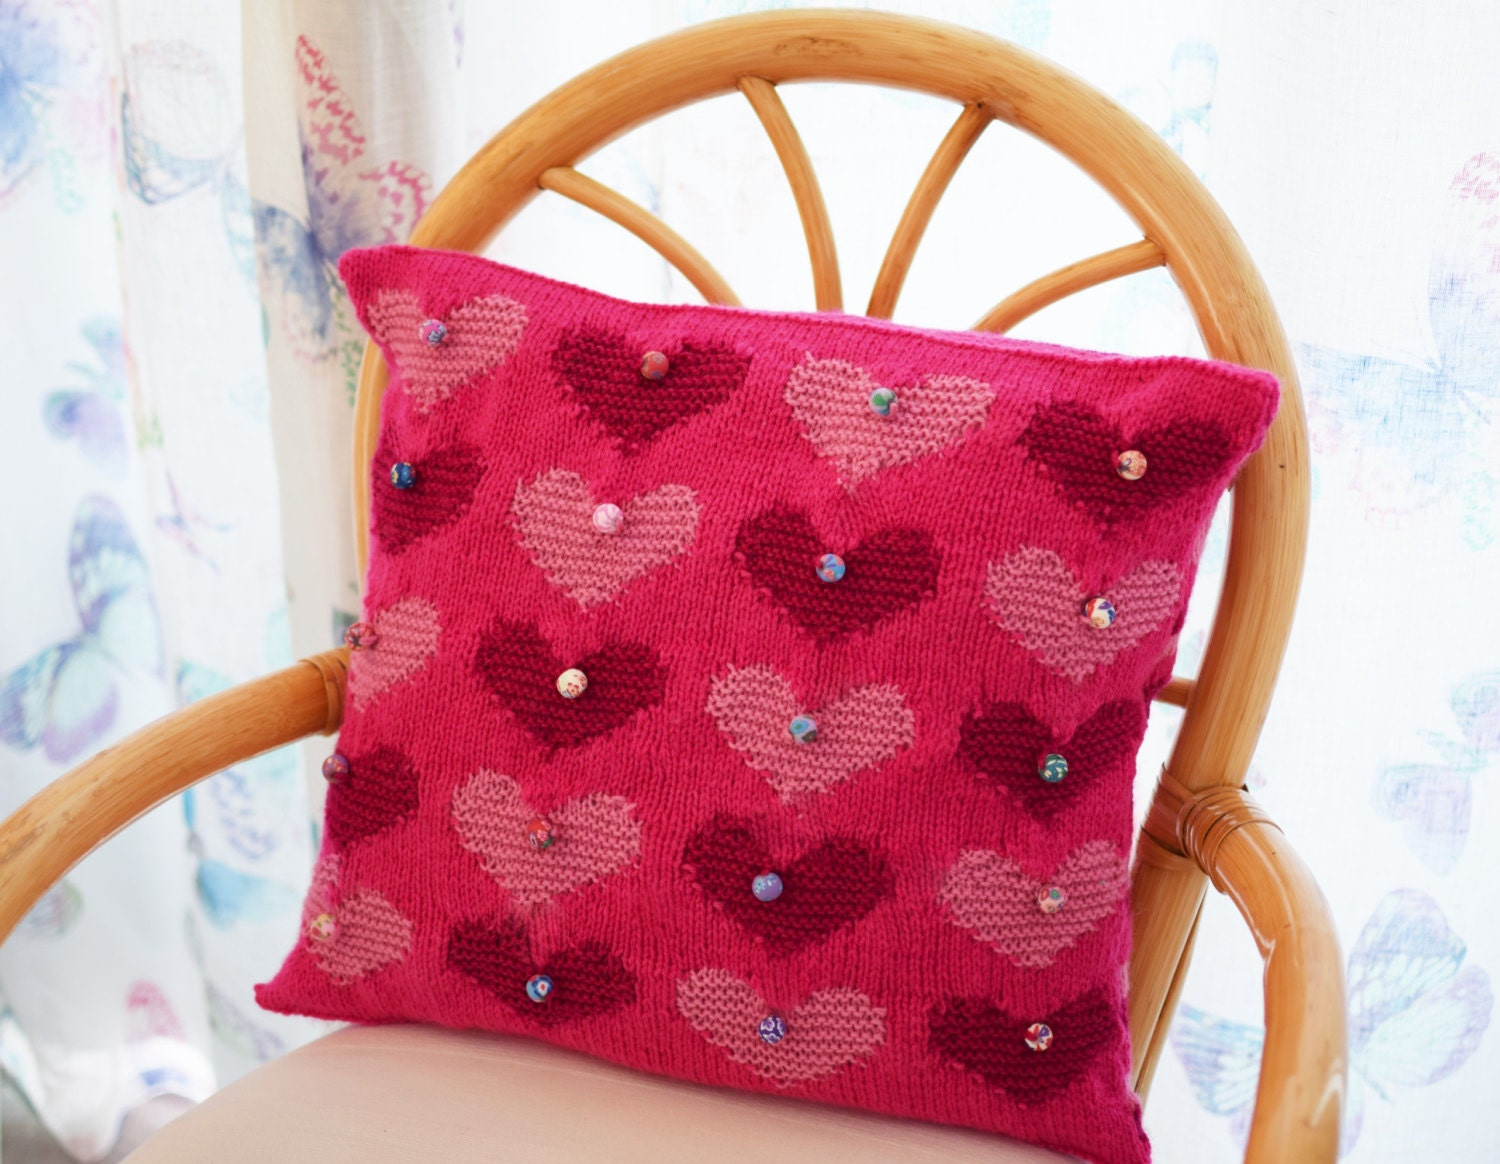 Heart cushion knitting pattern heart pillow knitting pattern instant digital download loading add to cart ask a question a very romantic heart cushion knitting pattern bankloansurffo Gallery